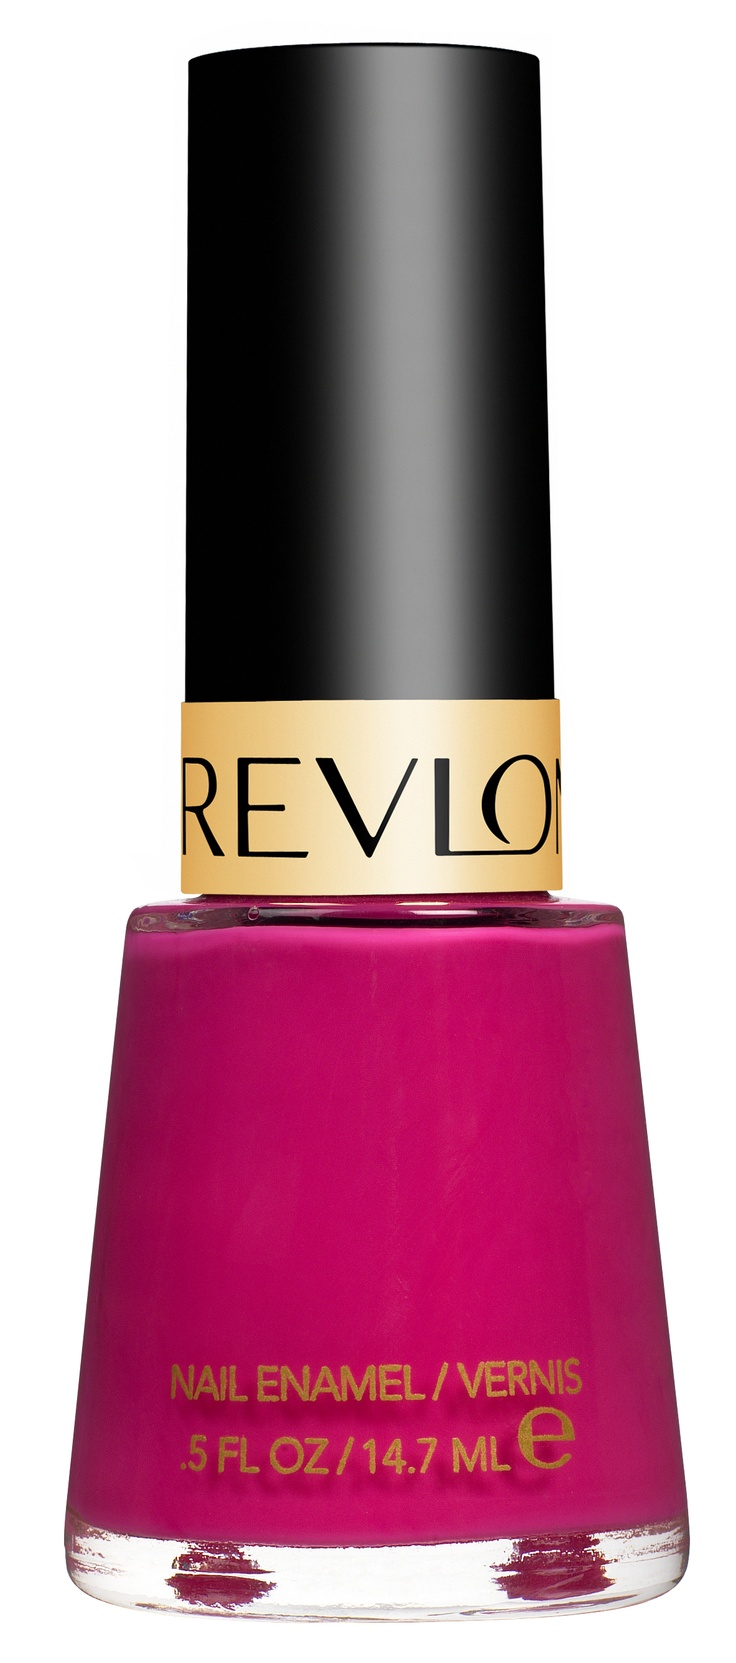 Get in the spirit and paint your nails pink with Revlon's Fuchsia Fever nail enamel #CIBCpinspiration